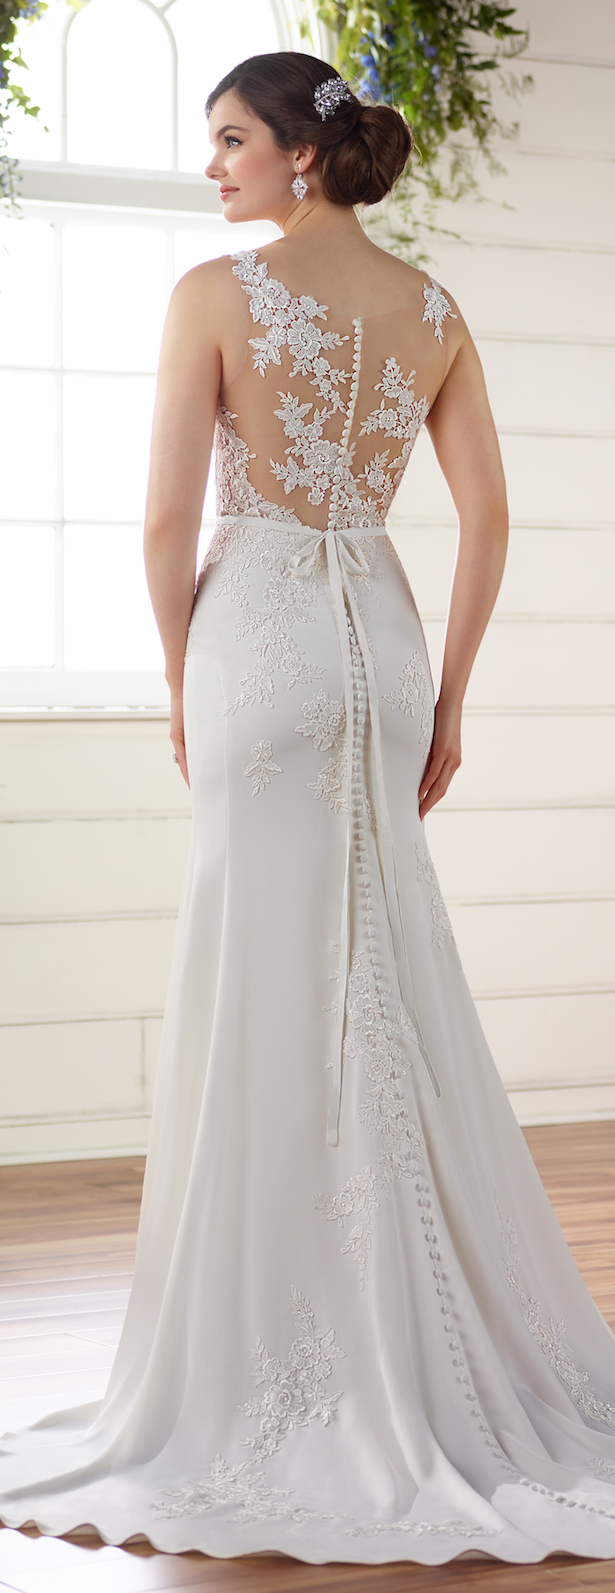 Wedding Dresses For Mothers Of The Bride